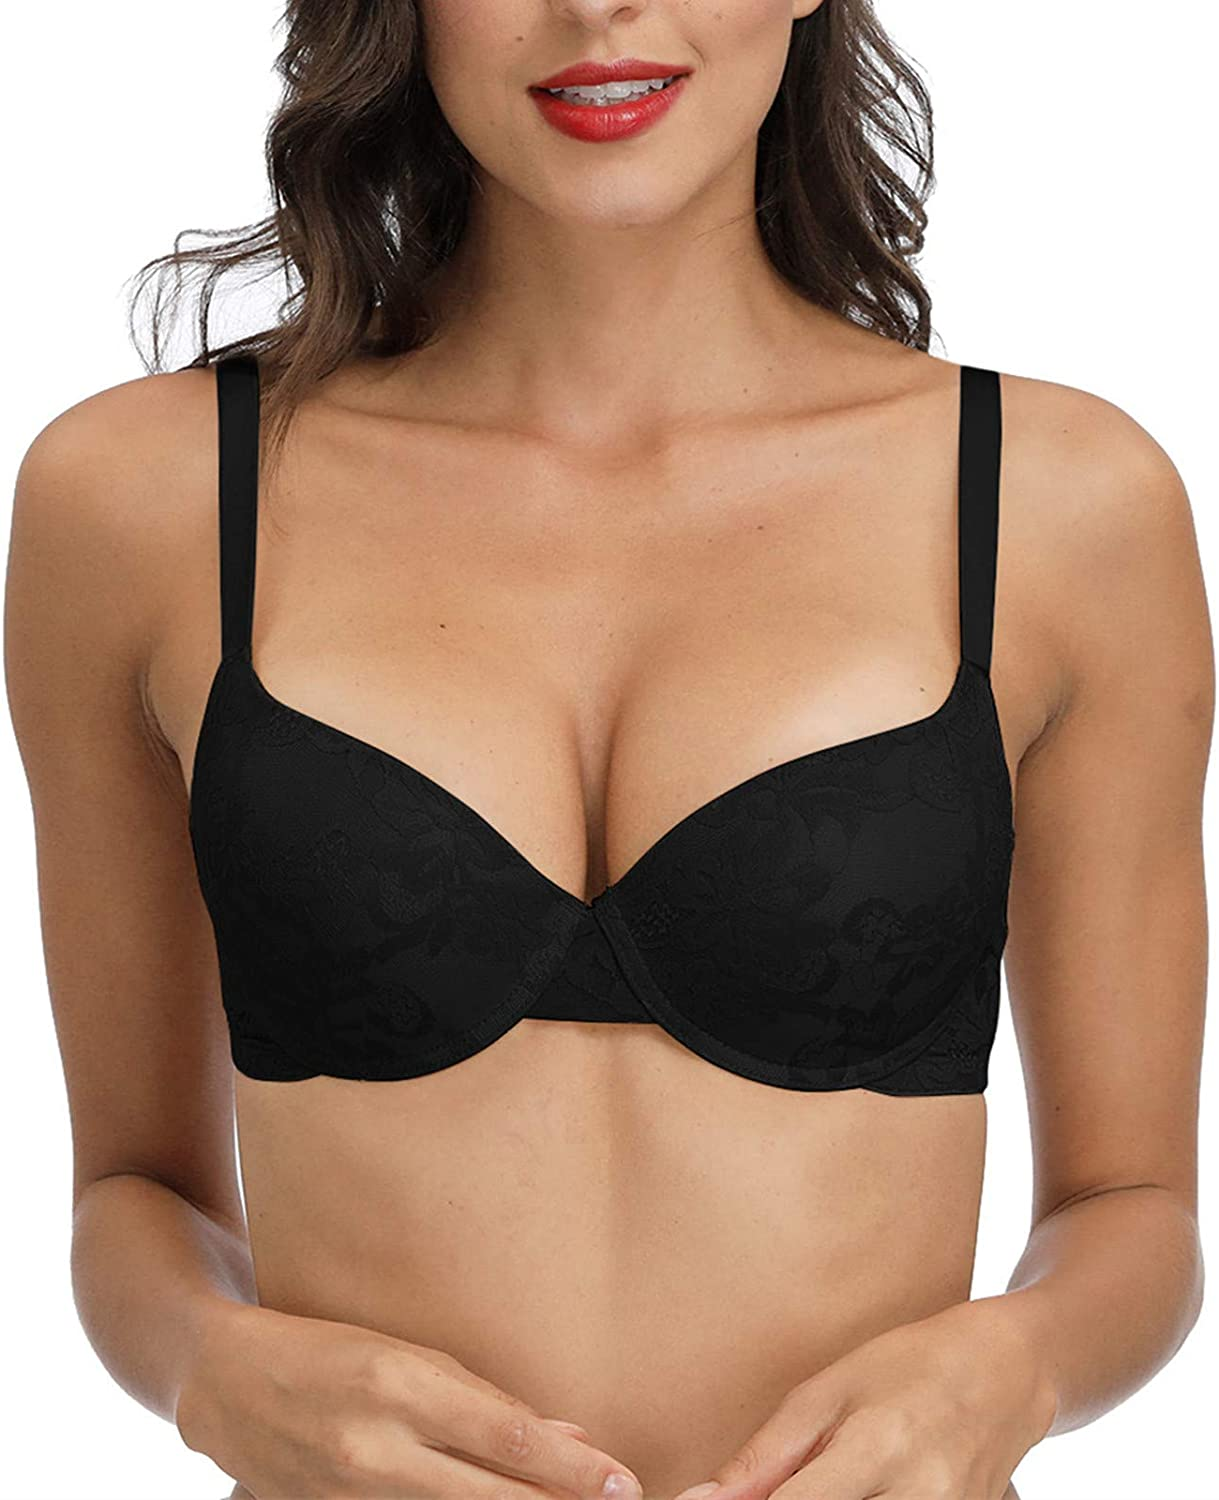 Womens Padded Push Up Lace Bra Underwired Demi Add A Cup Everyday Comfort Plunge Support Brassiere